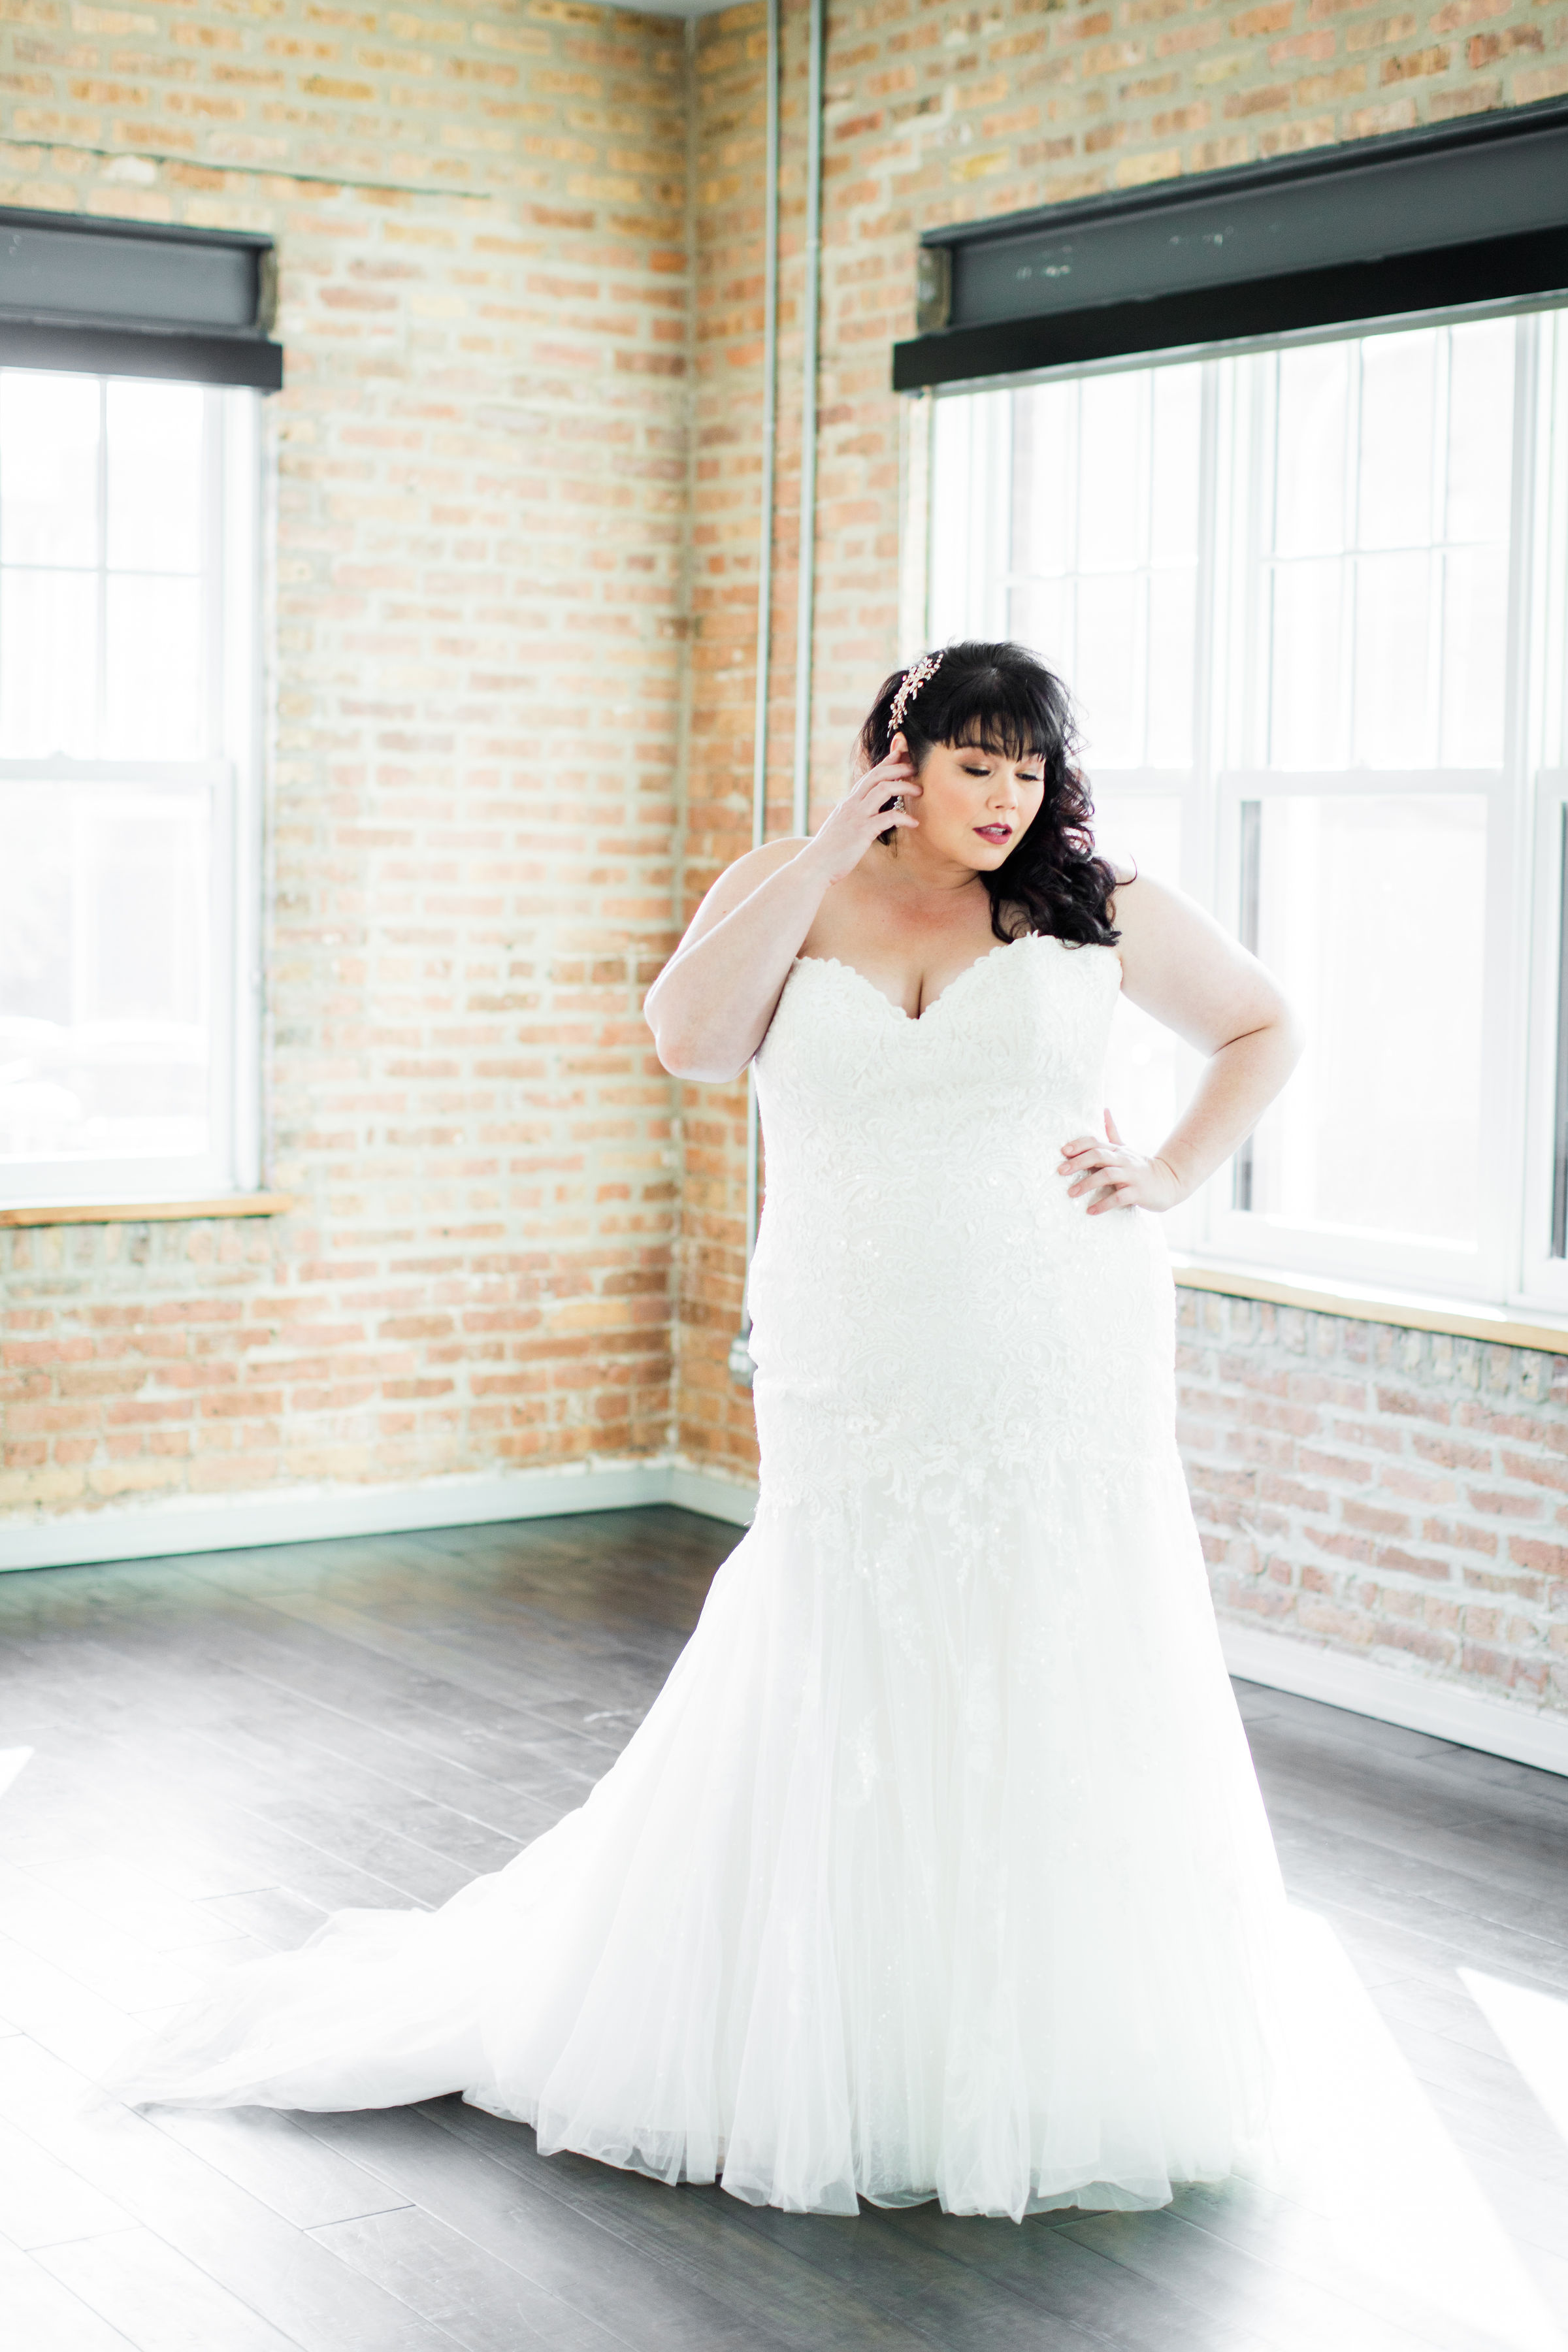 Chicago industrial wedding inspiration on CHI thee WED. See more wedding ideas at CHItheeWED.com!